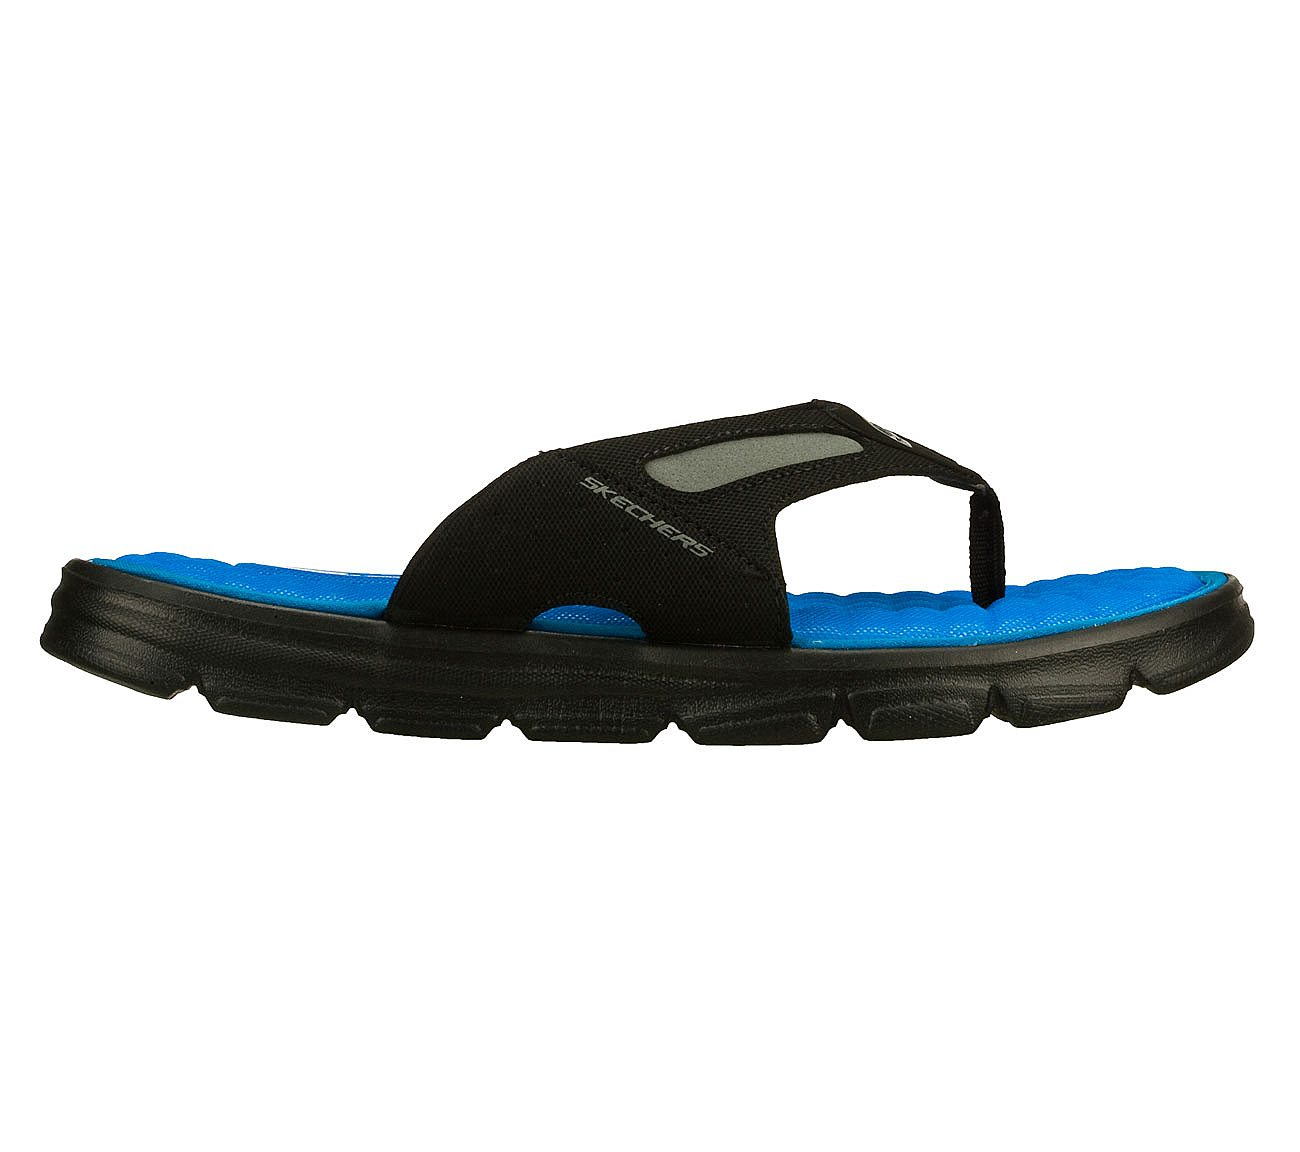 8a0270dcd5d3 Buy SKECHERS Uprush - True Form Sport Shoes only  42.00